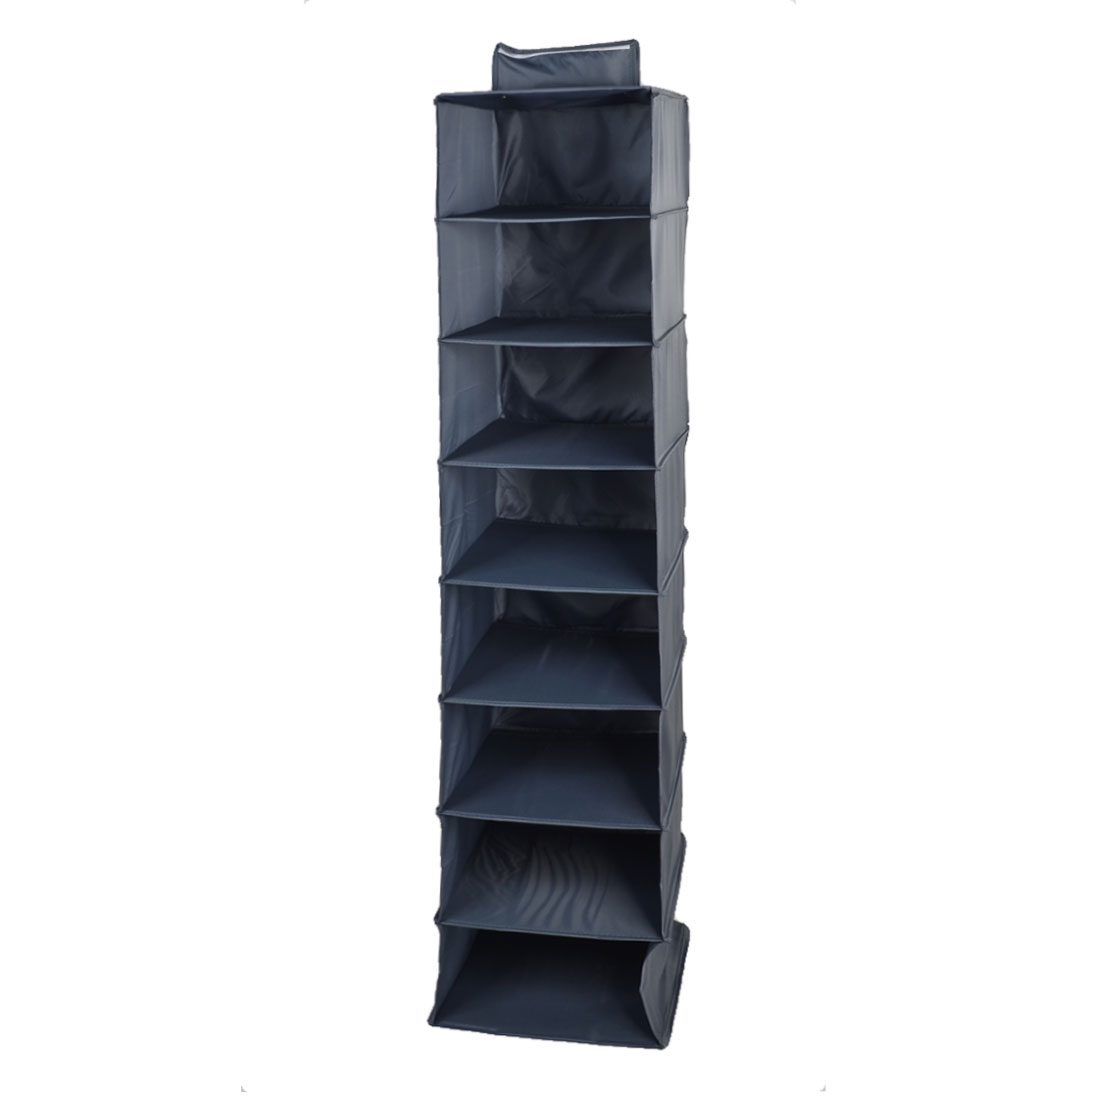 Household Foldable 8 Compartments Underwear Socks Tie Storage Box Case Dark Gray